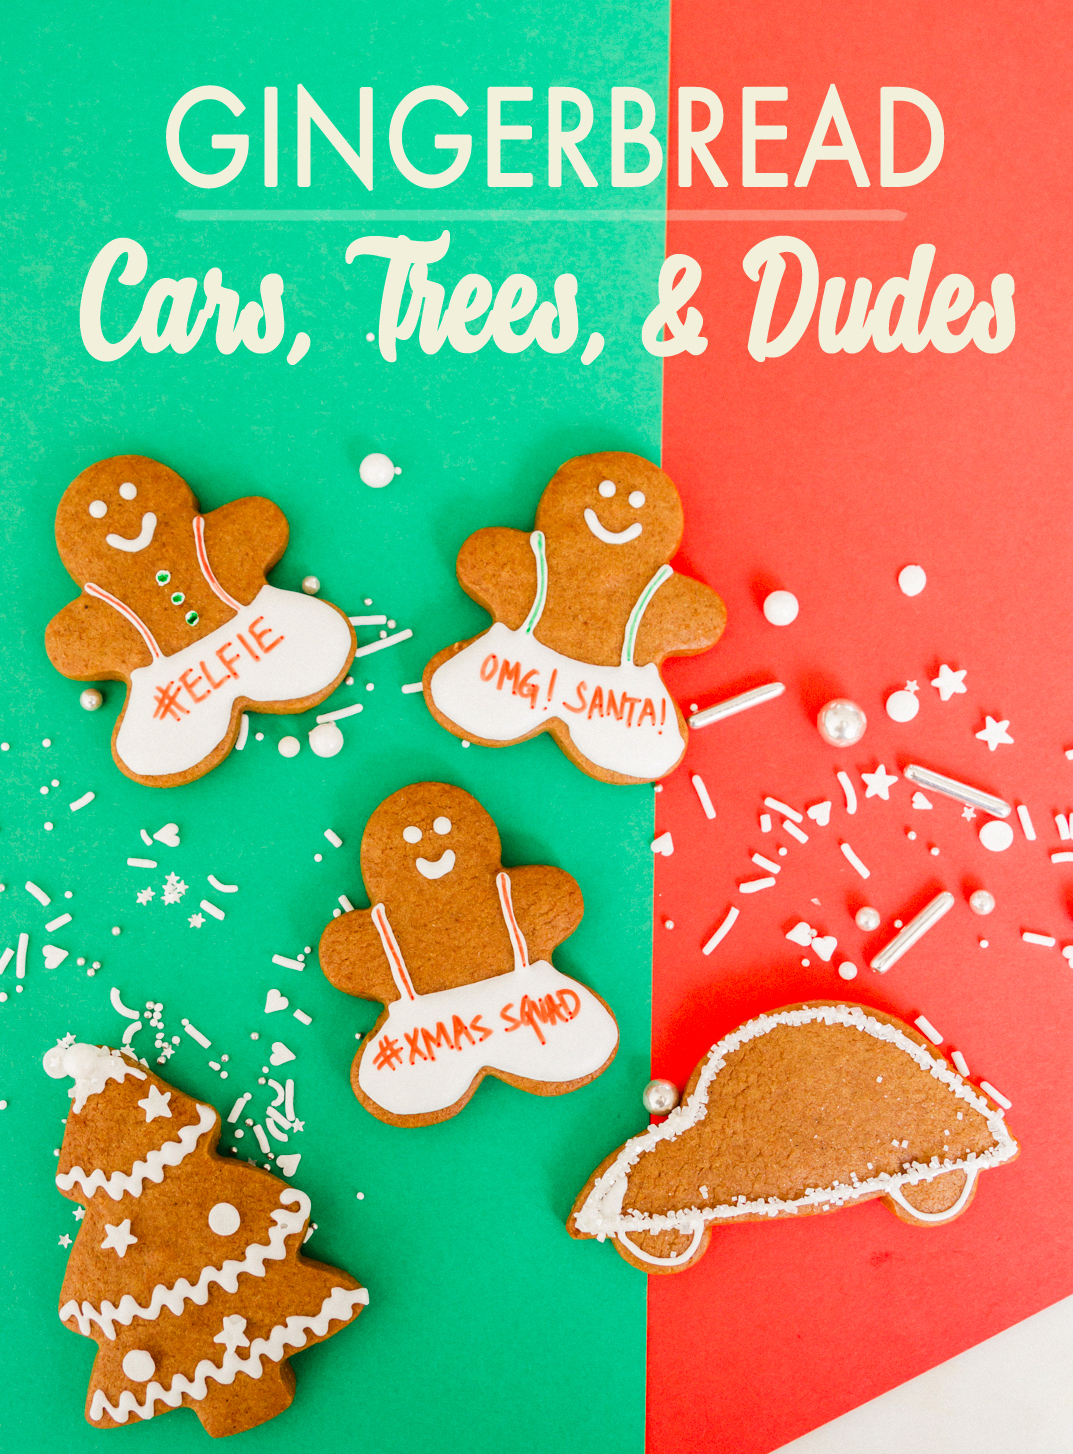 Gingerbread Cookies - Cars, Trees & Dudes